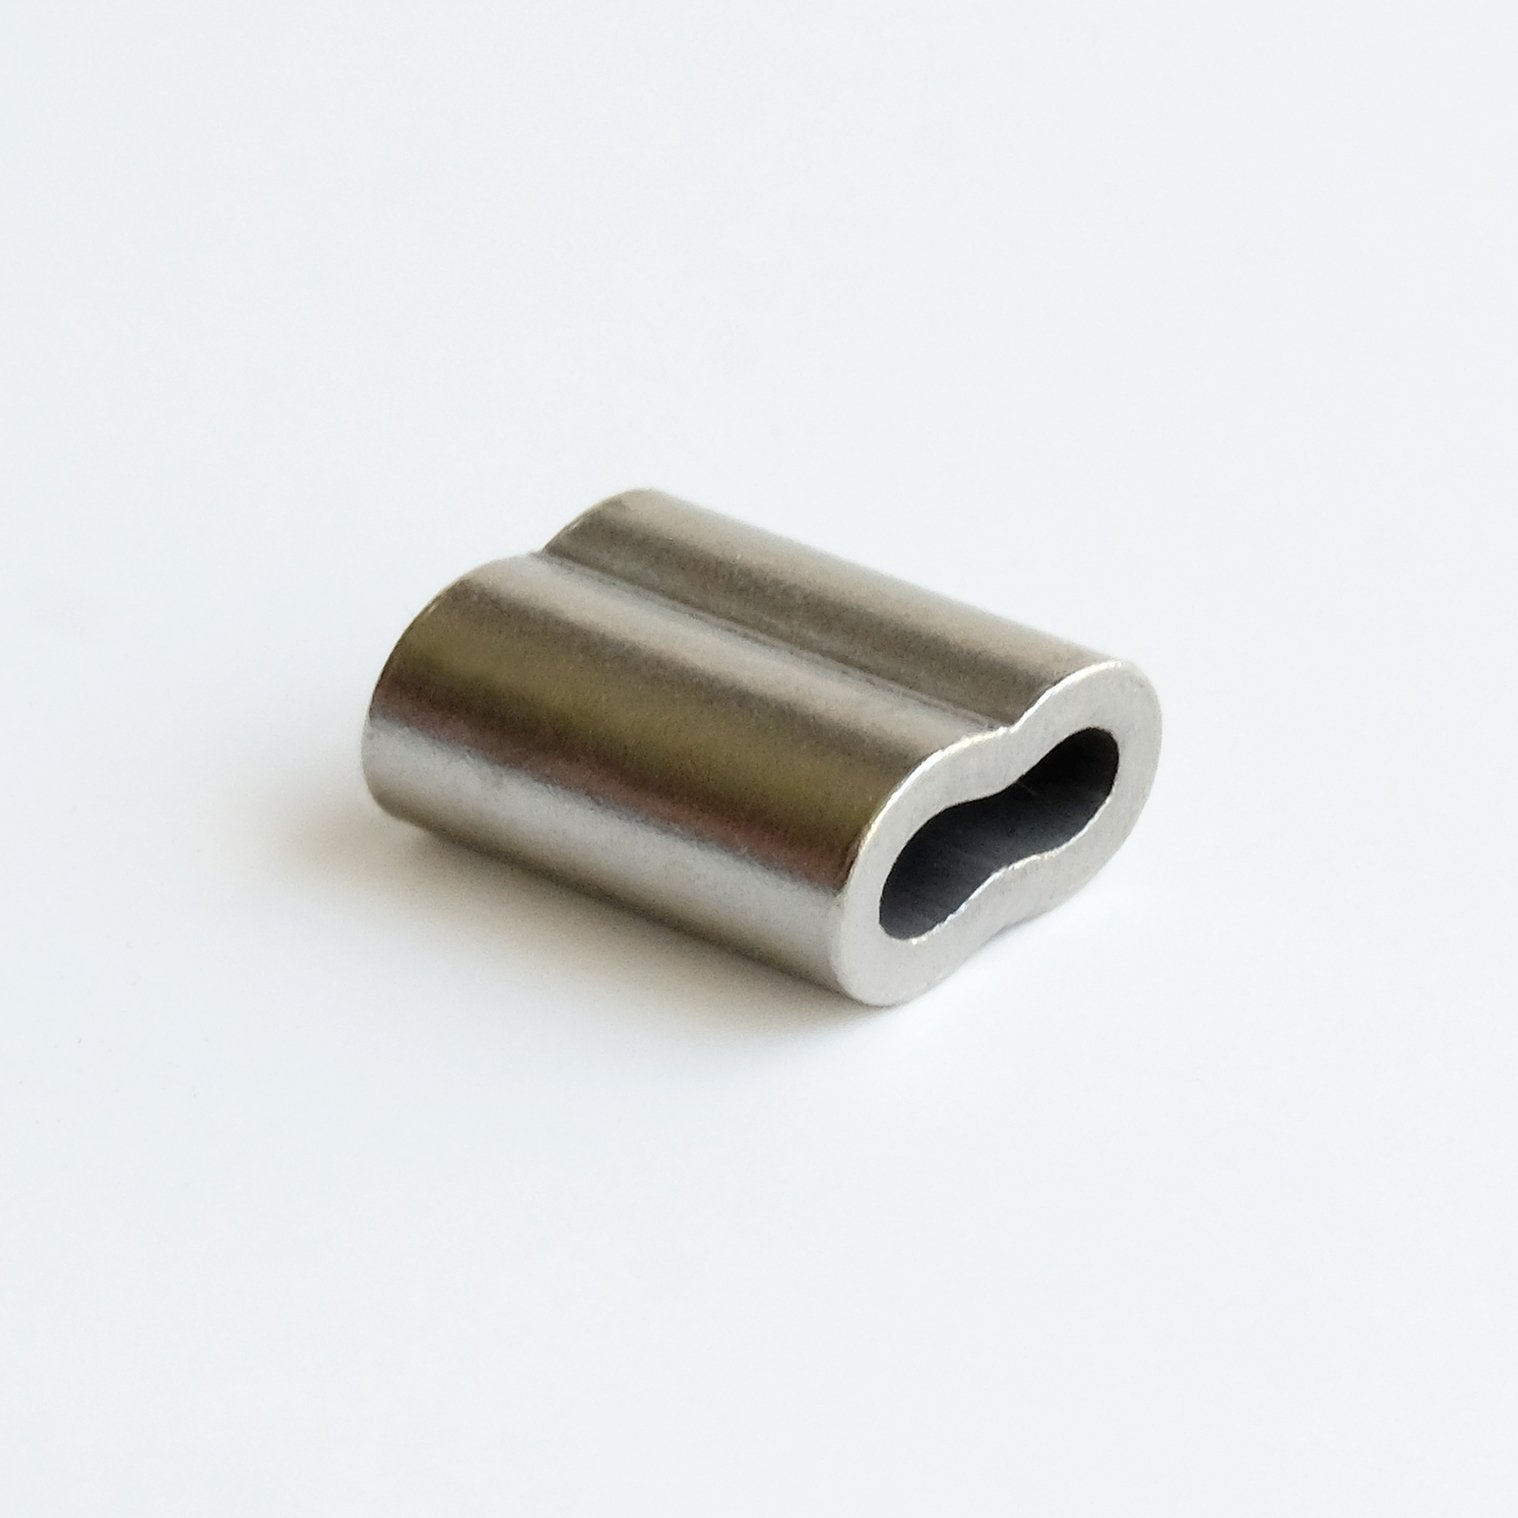 NS-2.0 (Nickel swage - 2mm Wire rope)